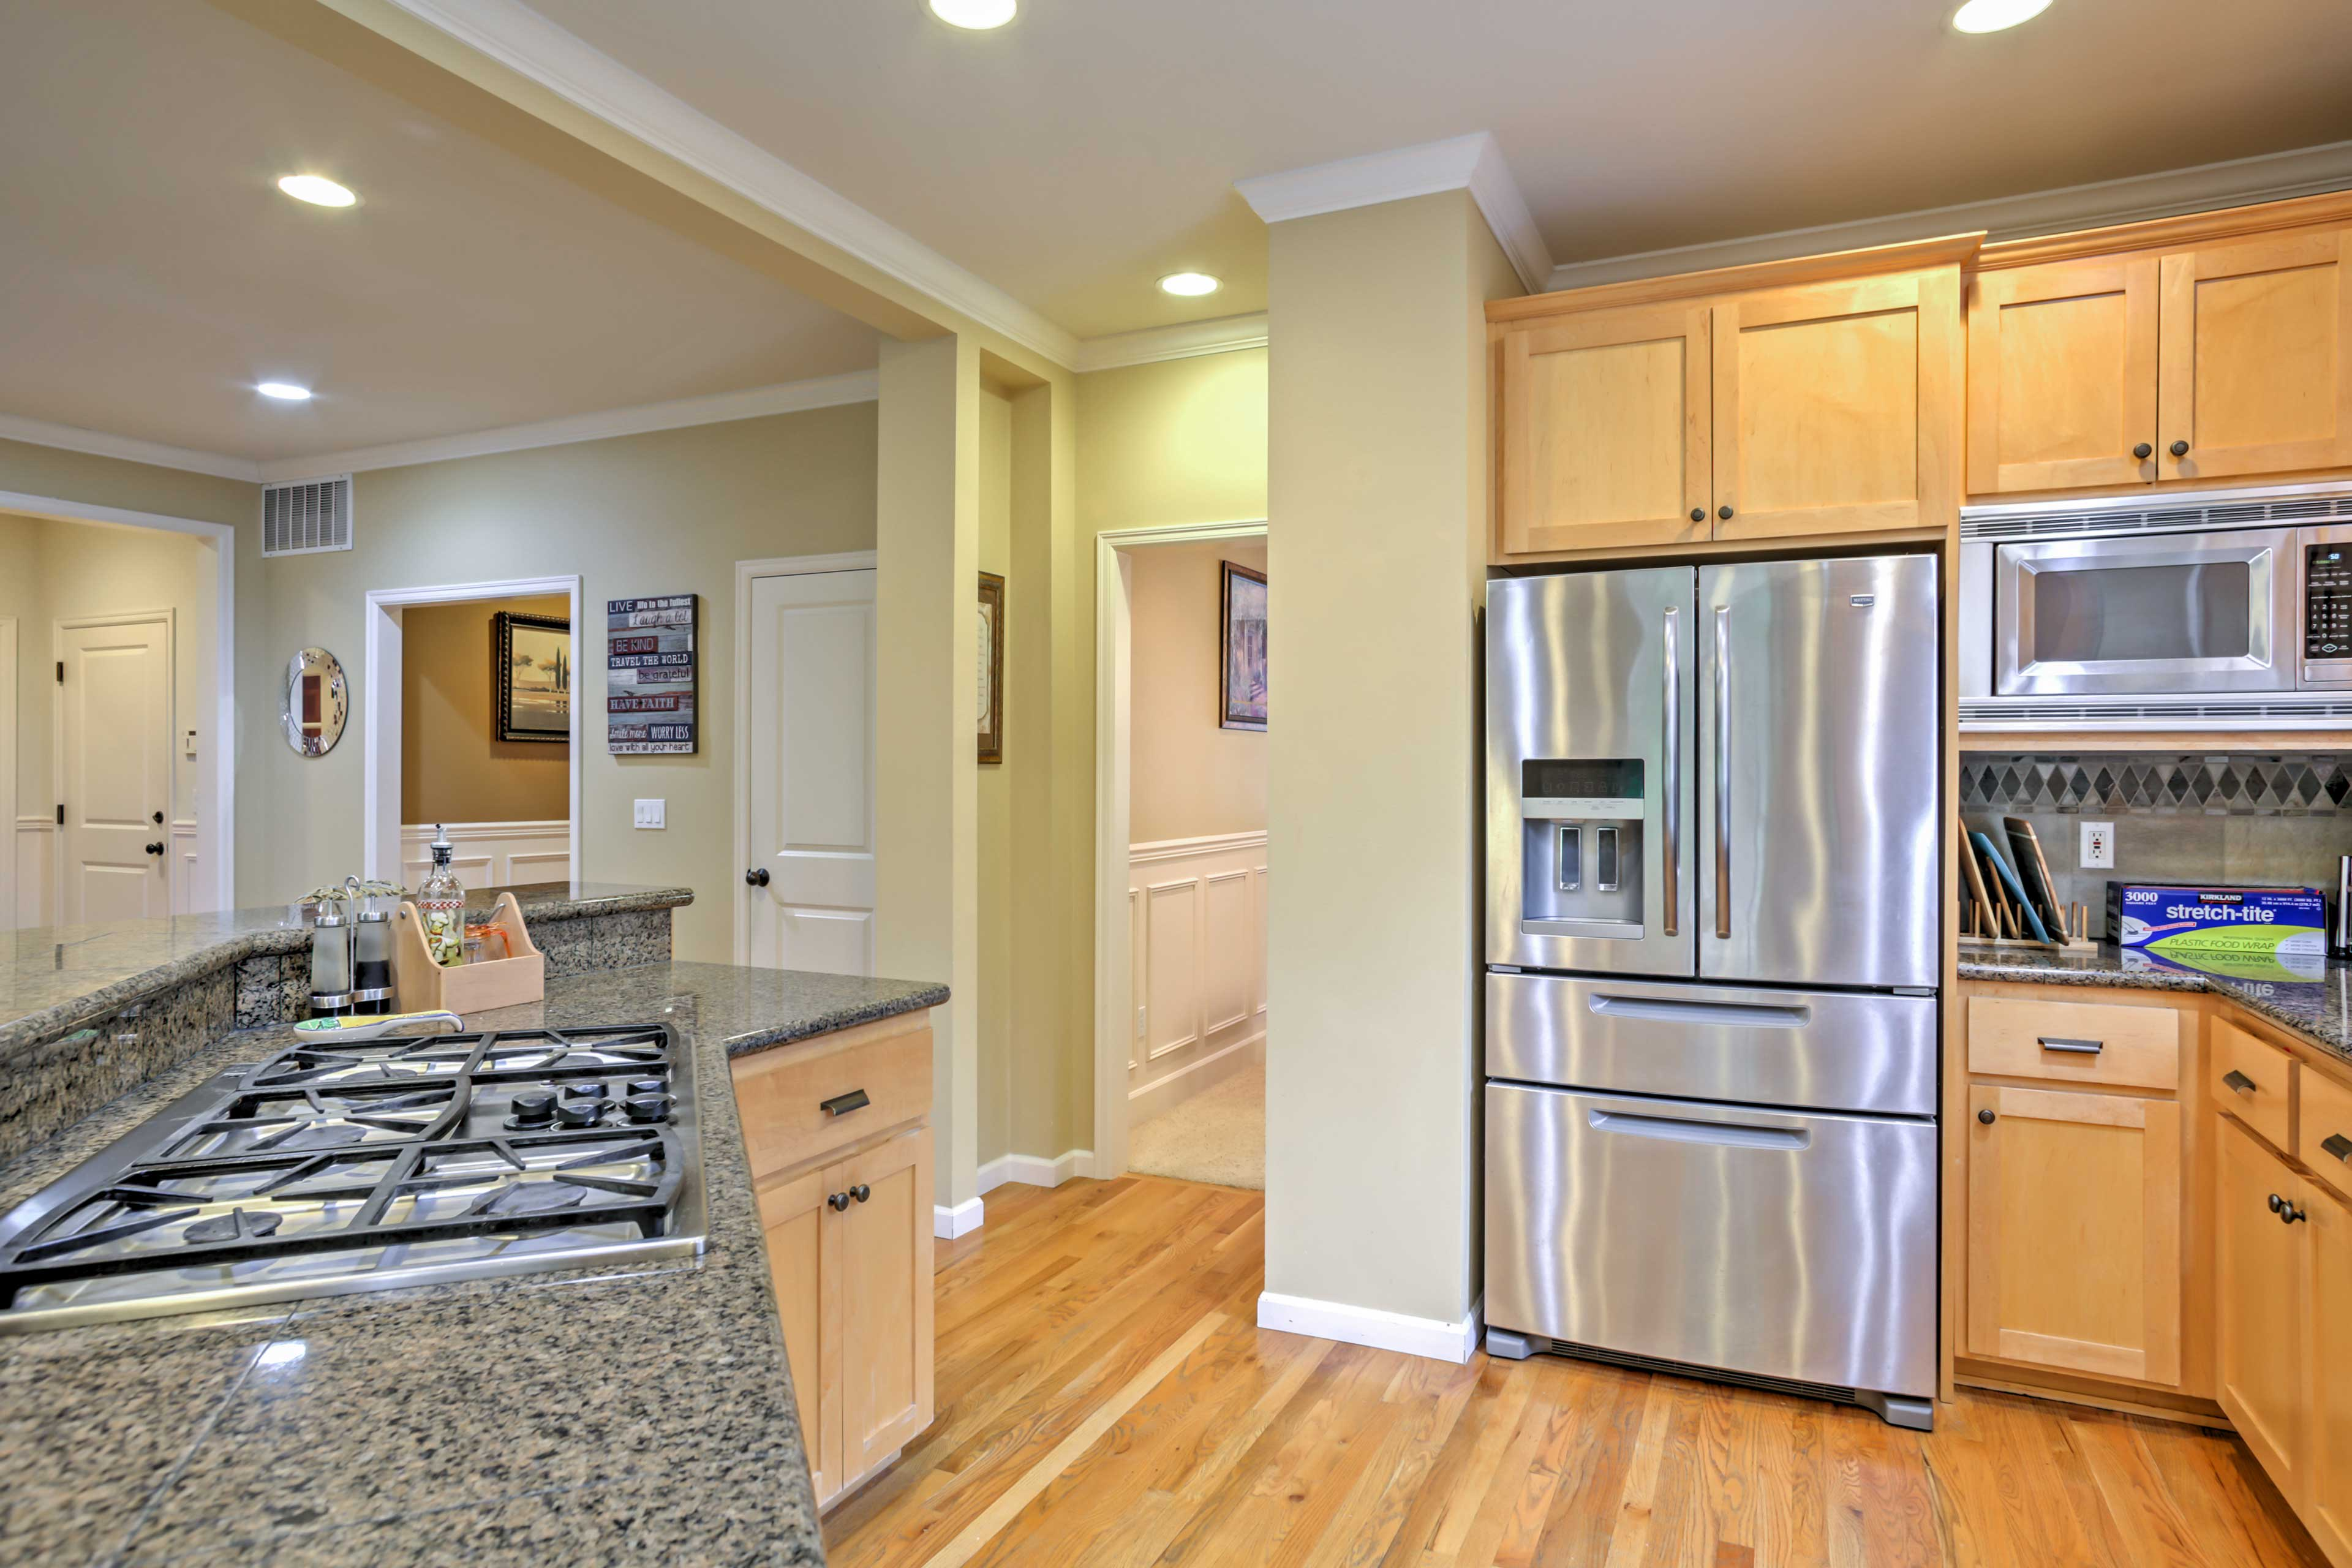 The chef in the group can look forward to cooking in the fully equipped kitchen.